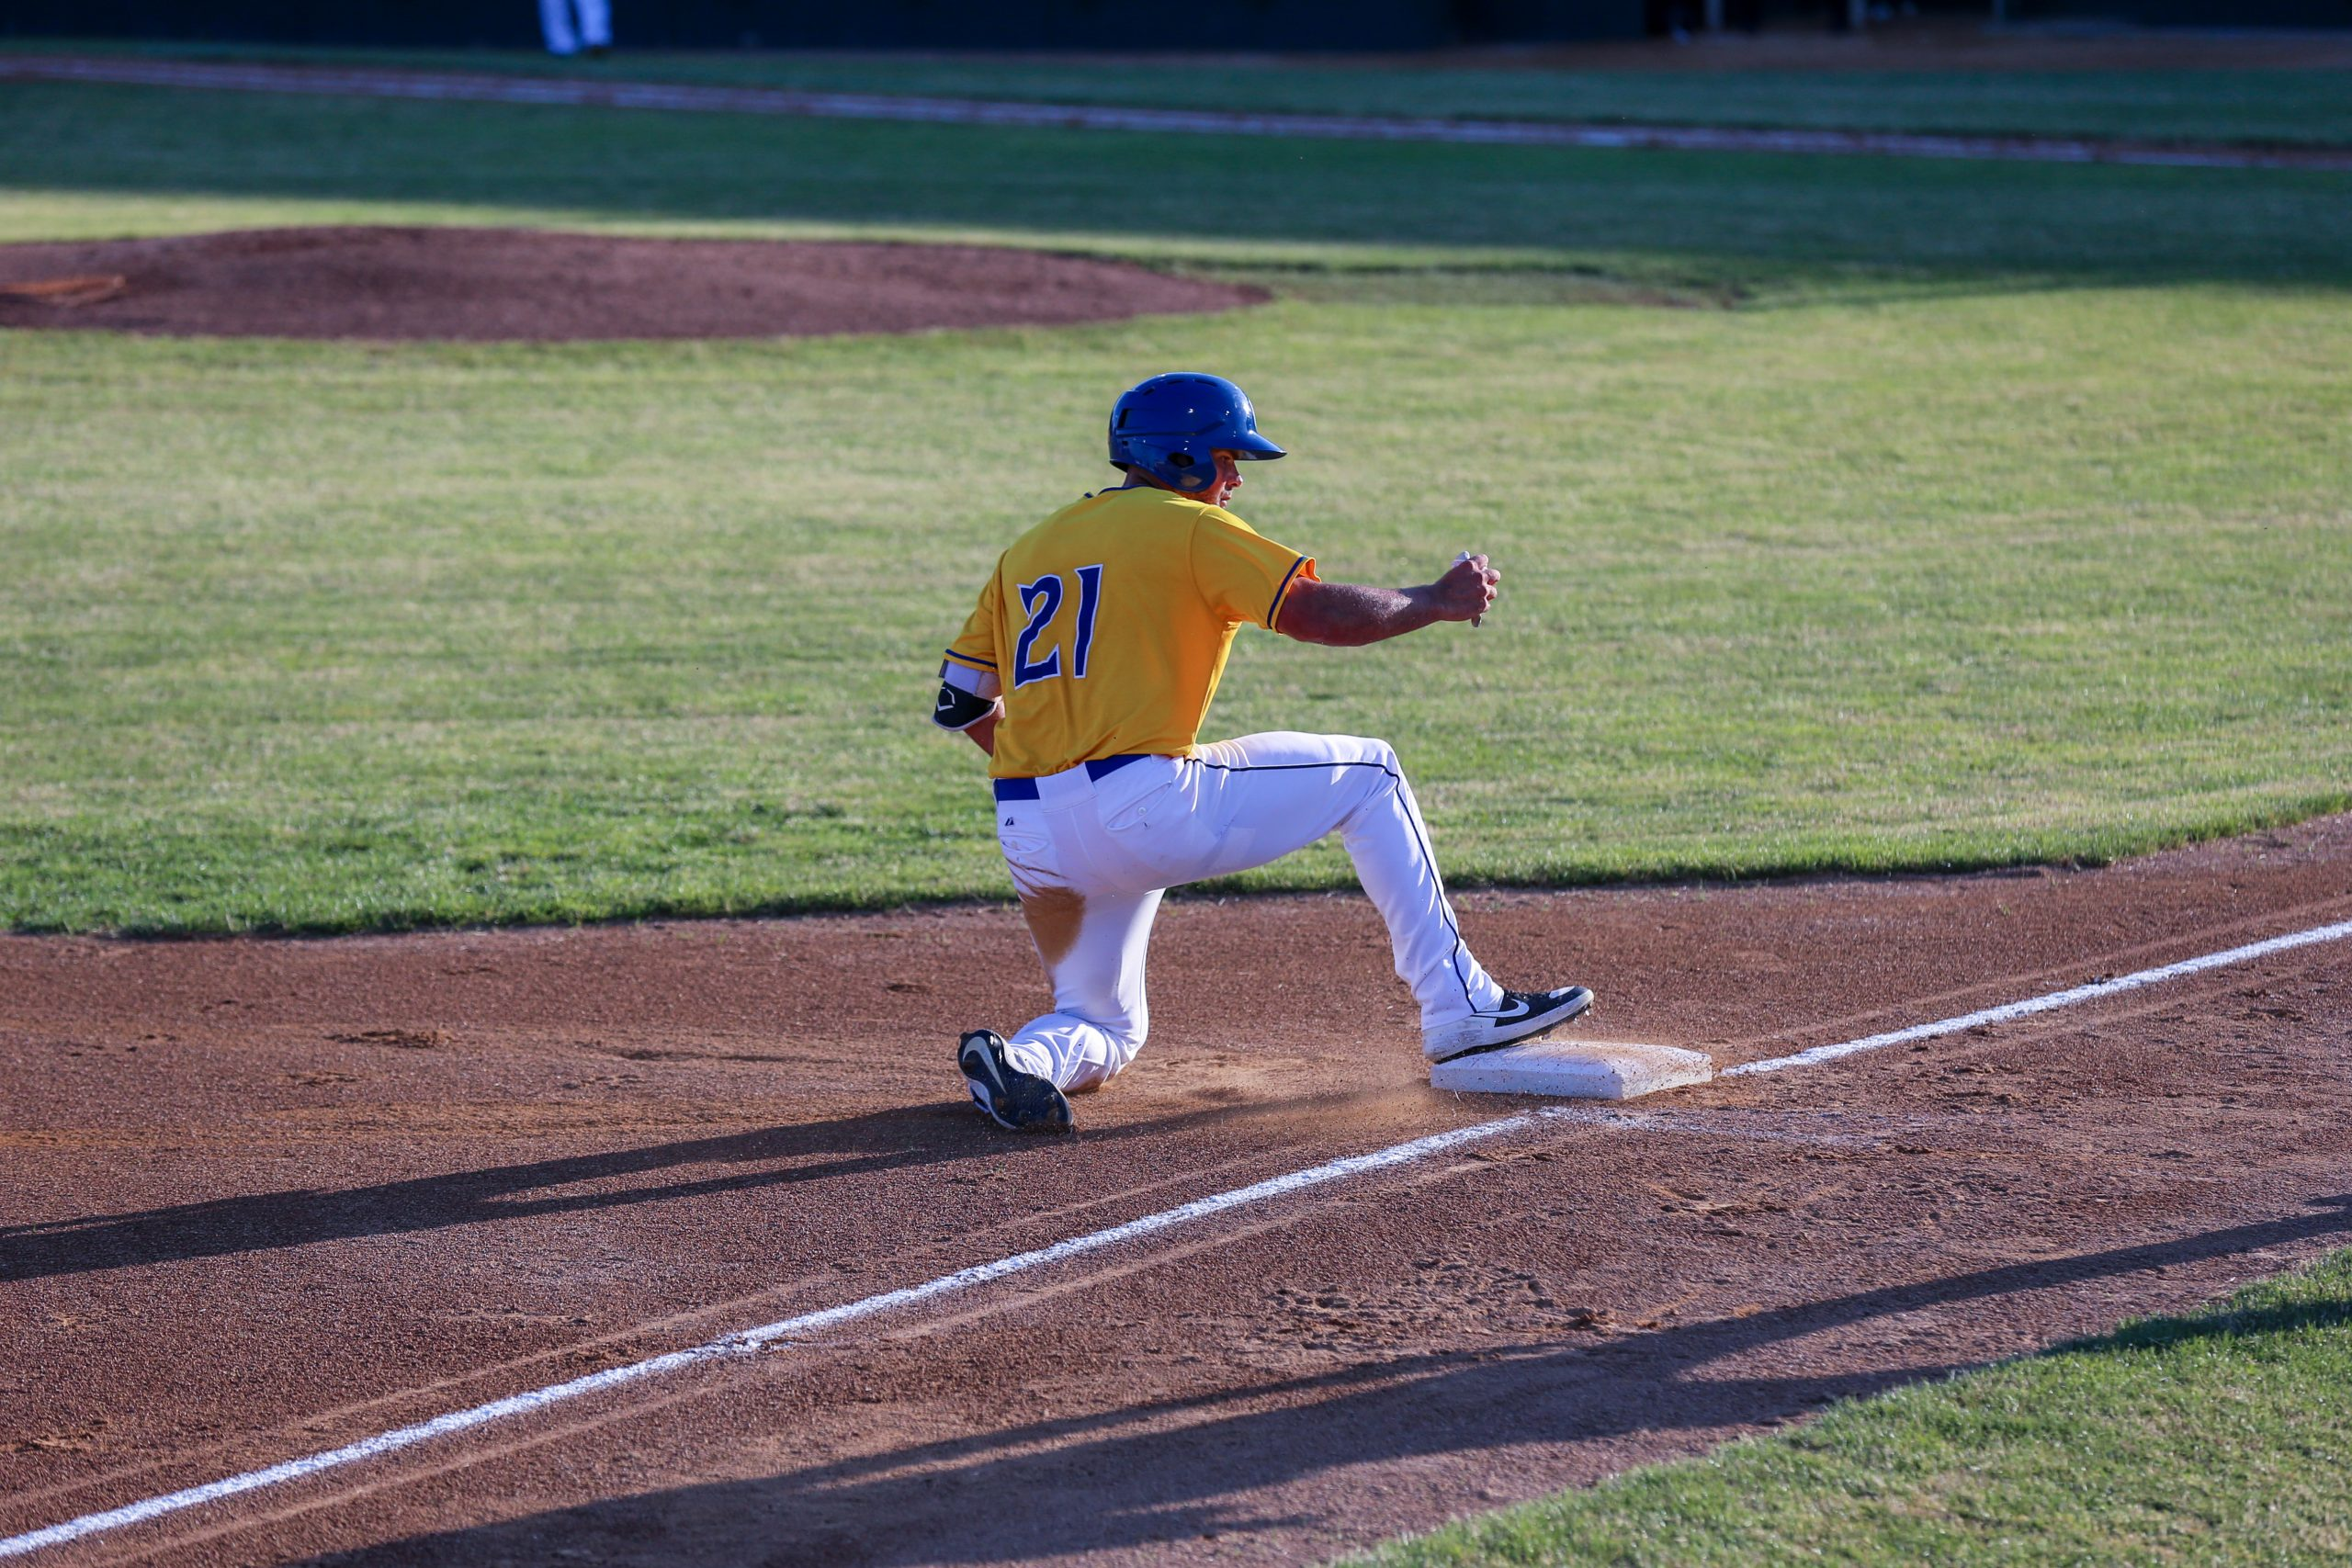 11-Run Fourth Too Much for Canaries to Overcome